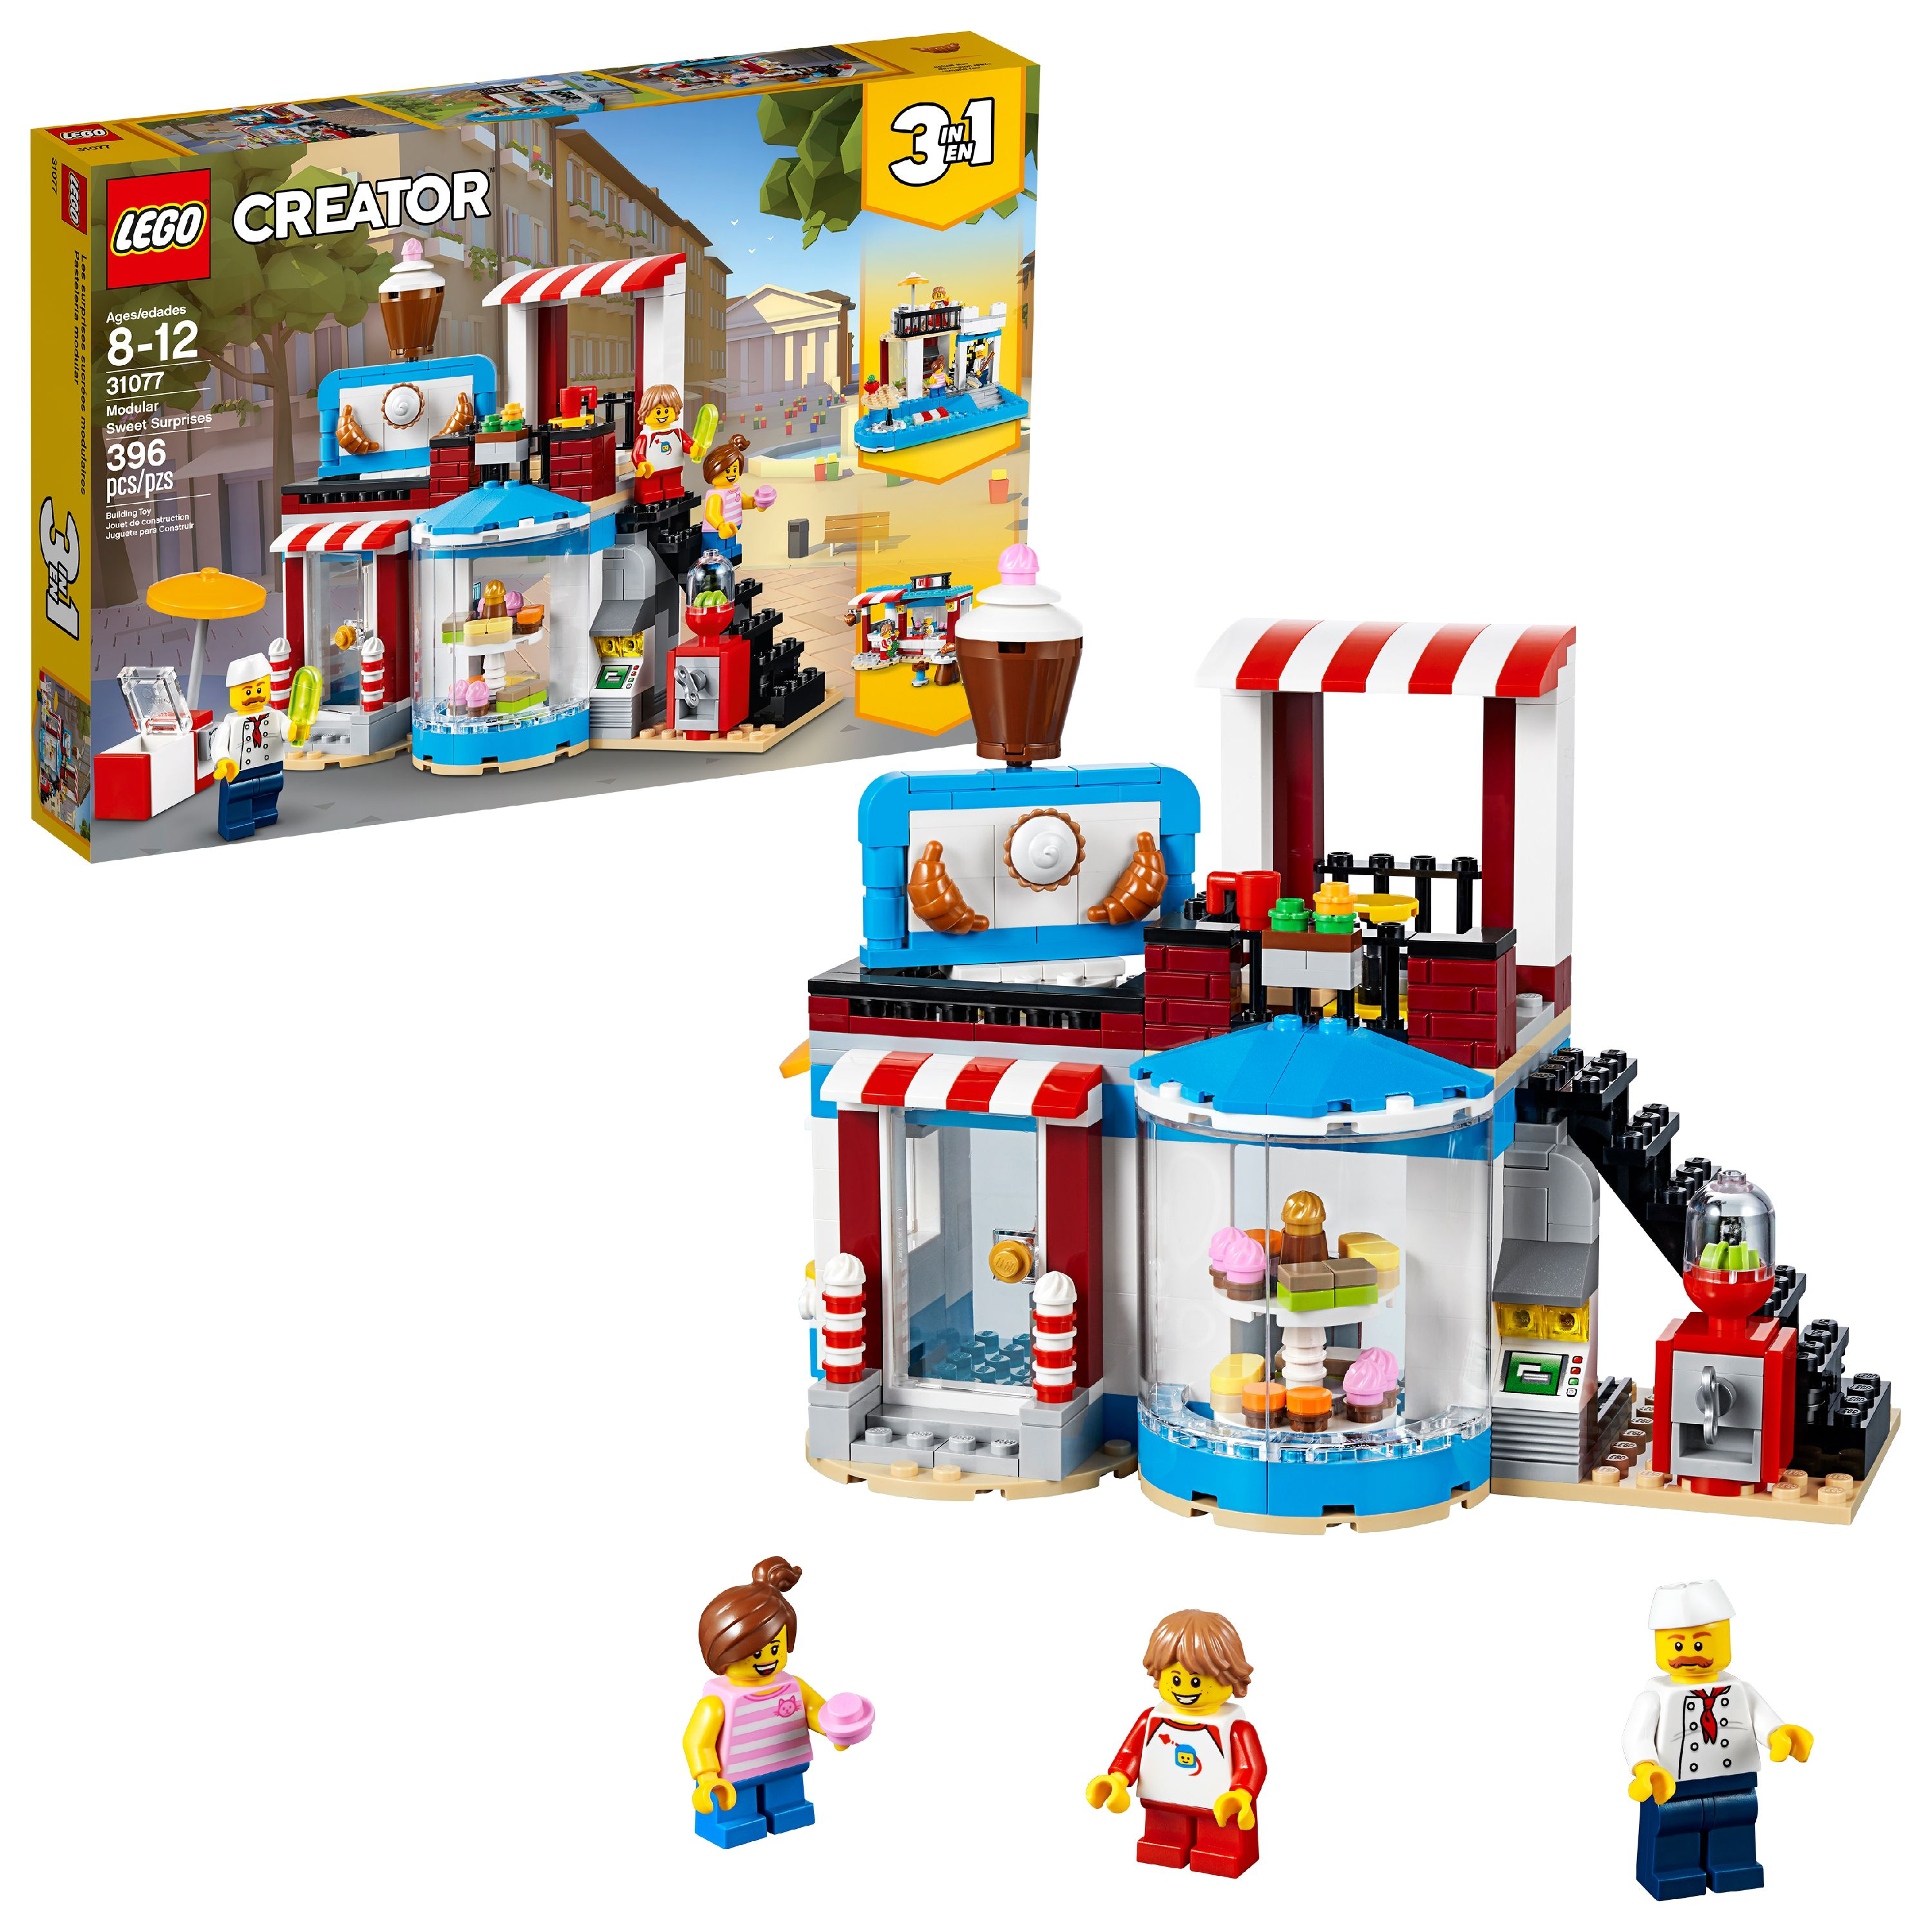 LEGO Creator 3in1 Modular Sweet Surprises 31077 (396 Pieces)